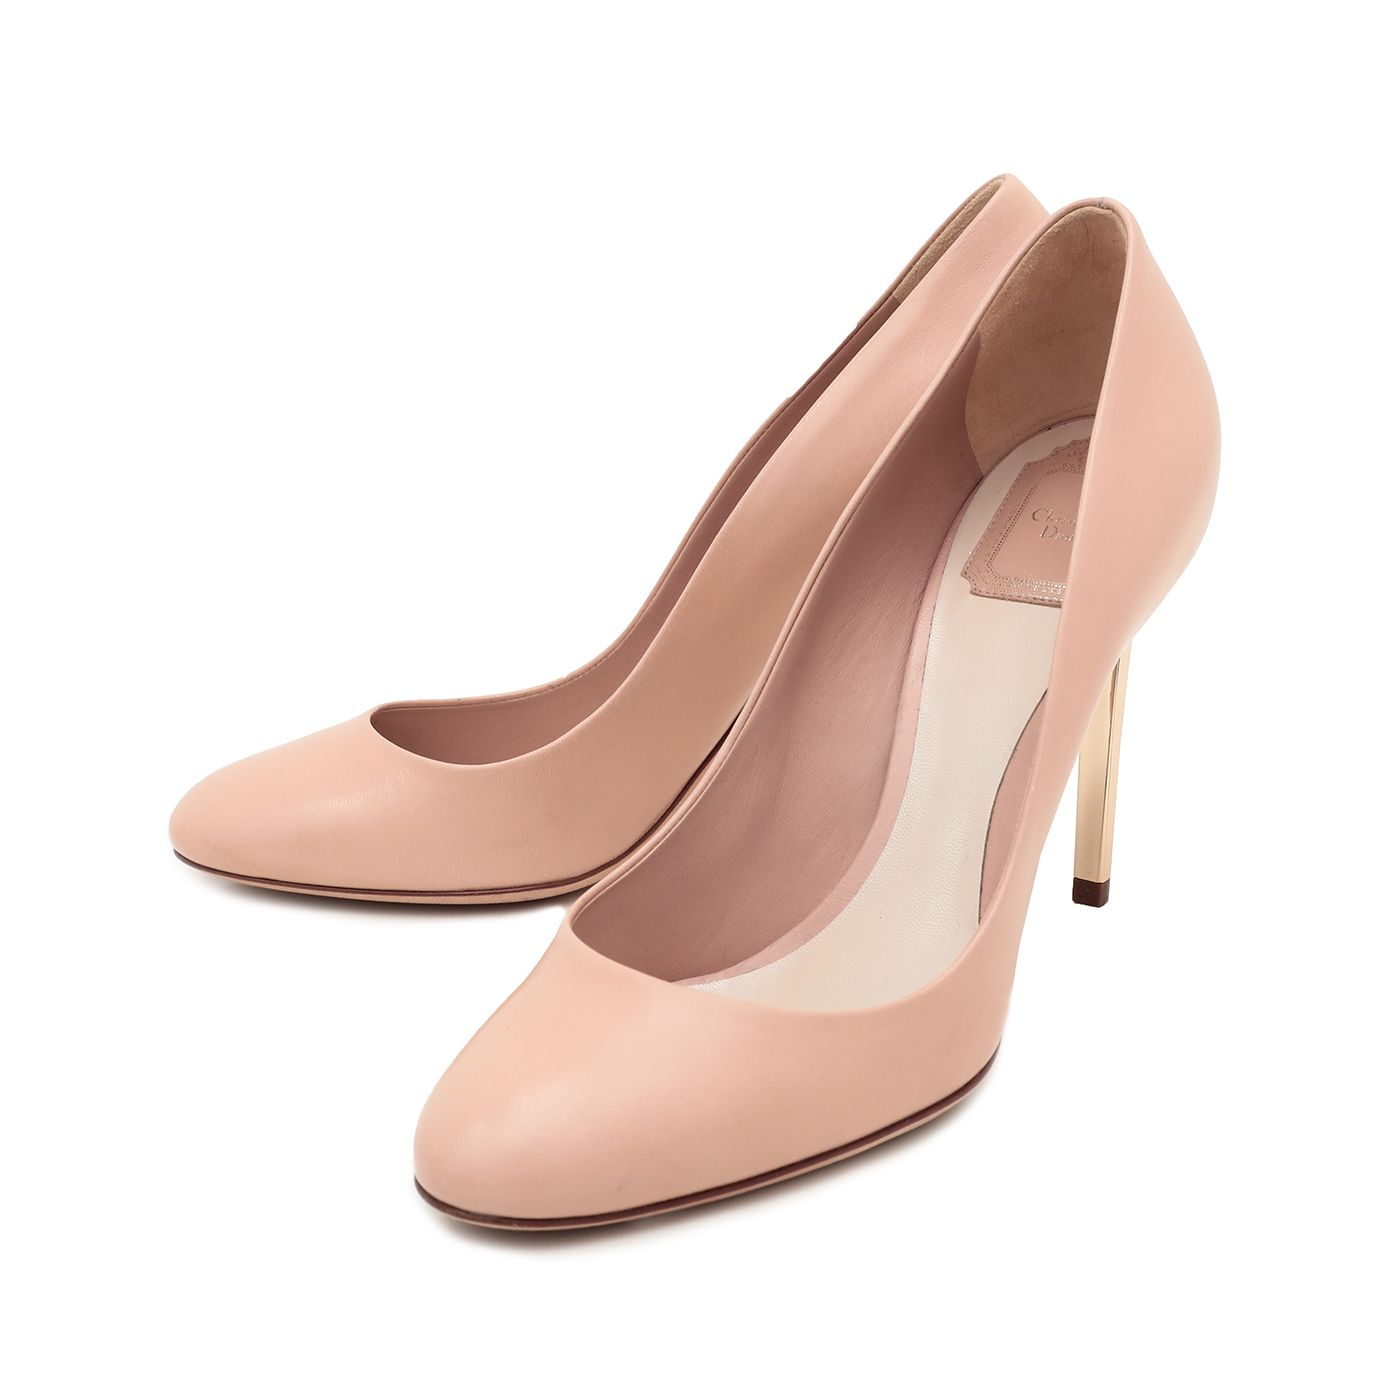 Christian Dior Nude Gold Heel Pumps 42